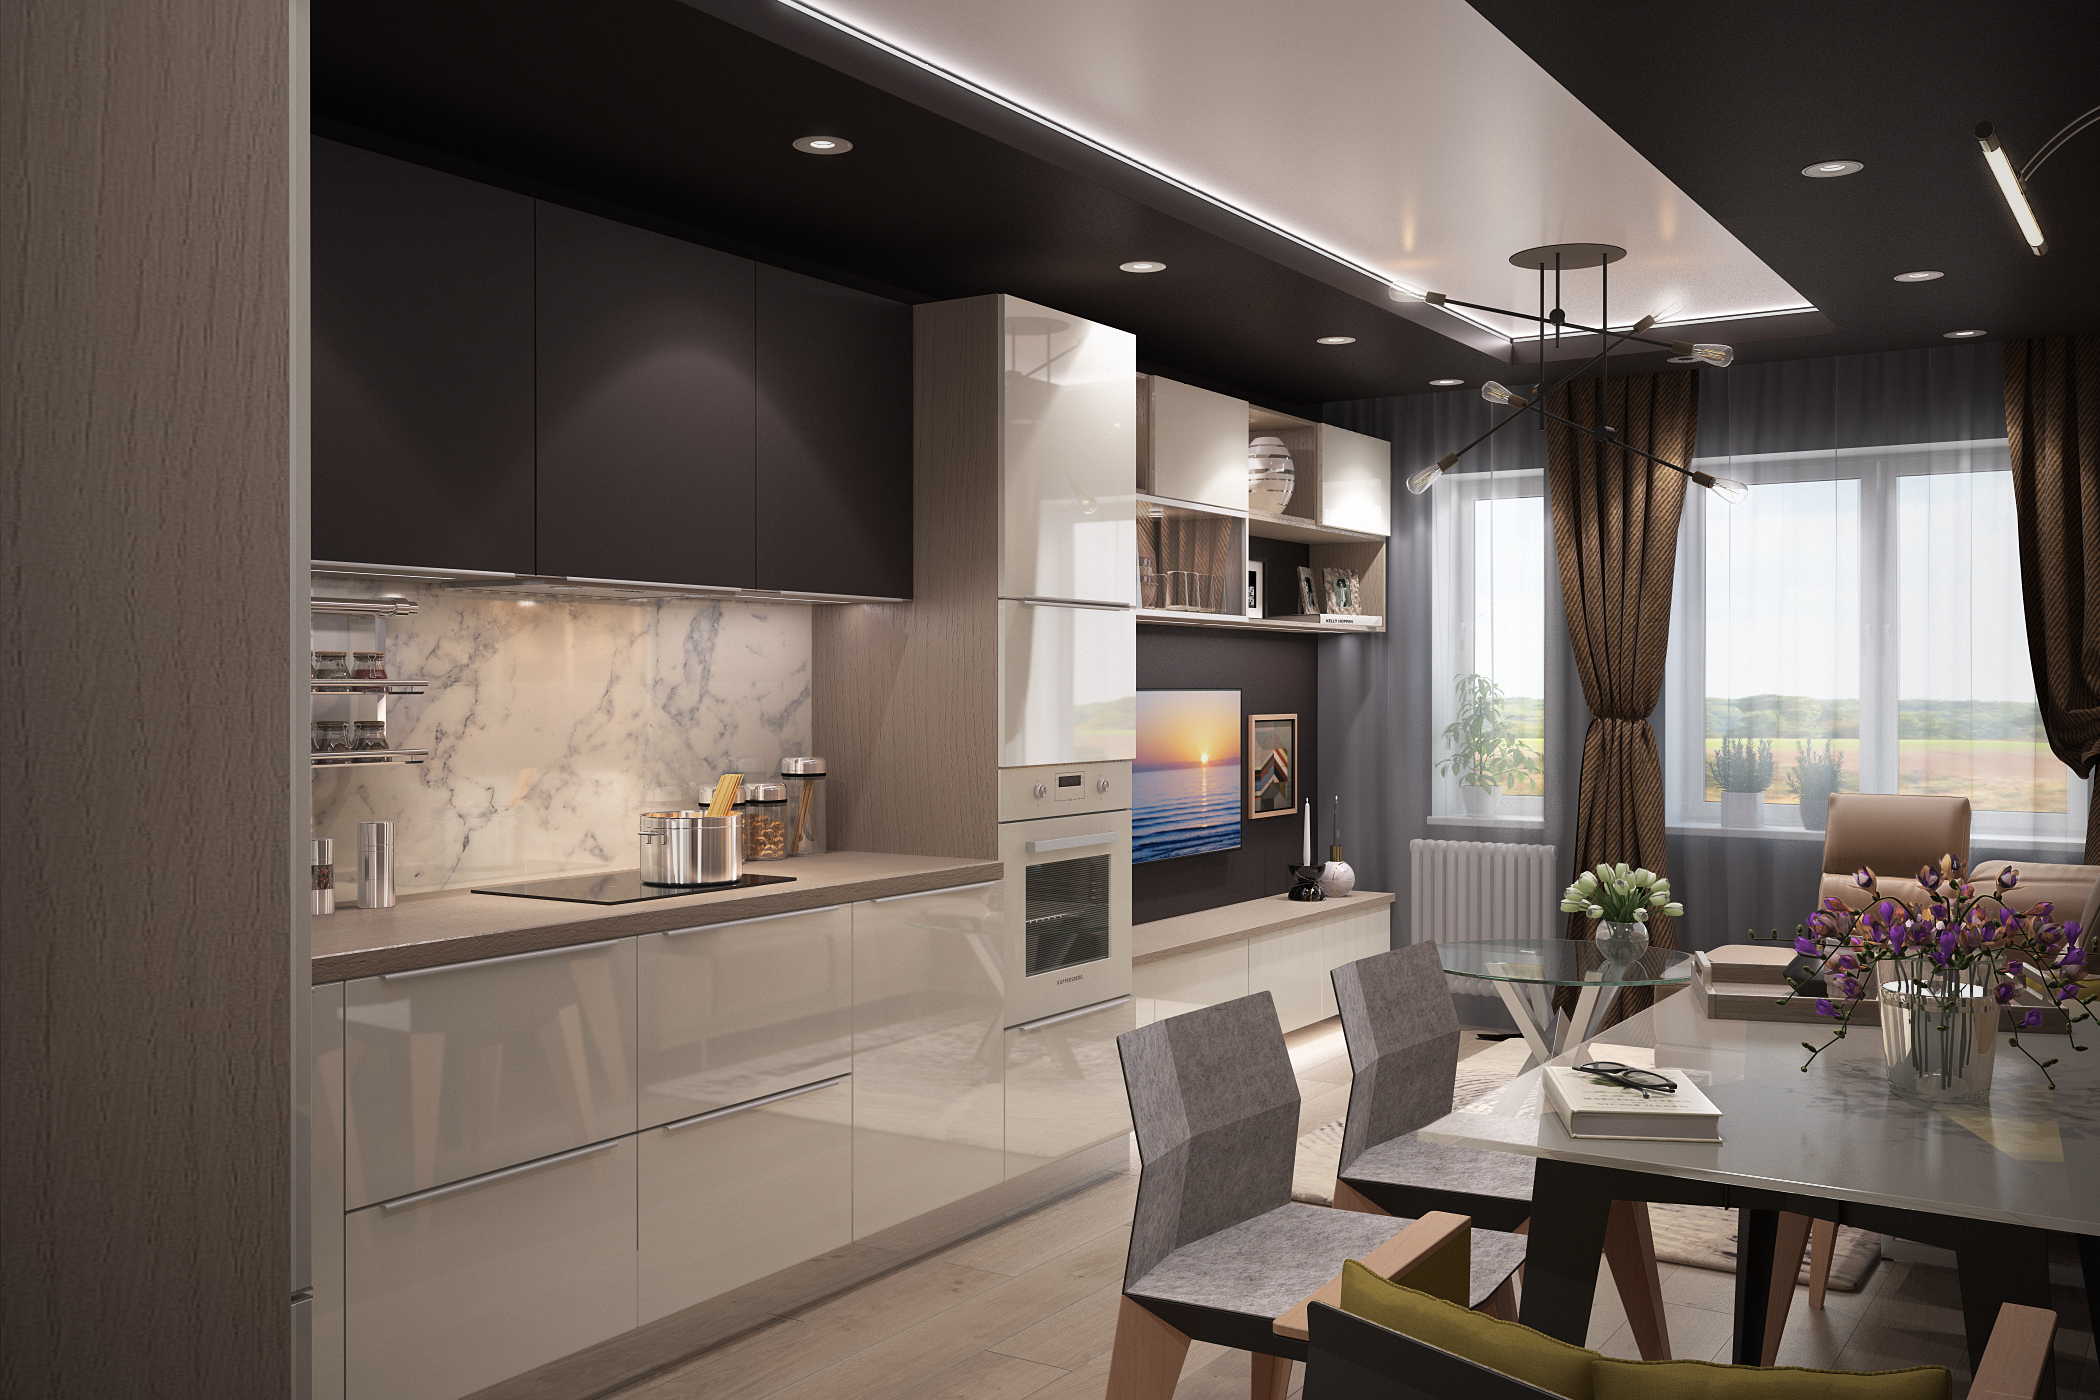 Kitchen and living room in 3d max vray 3.0 image